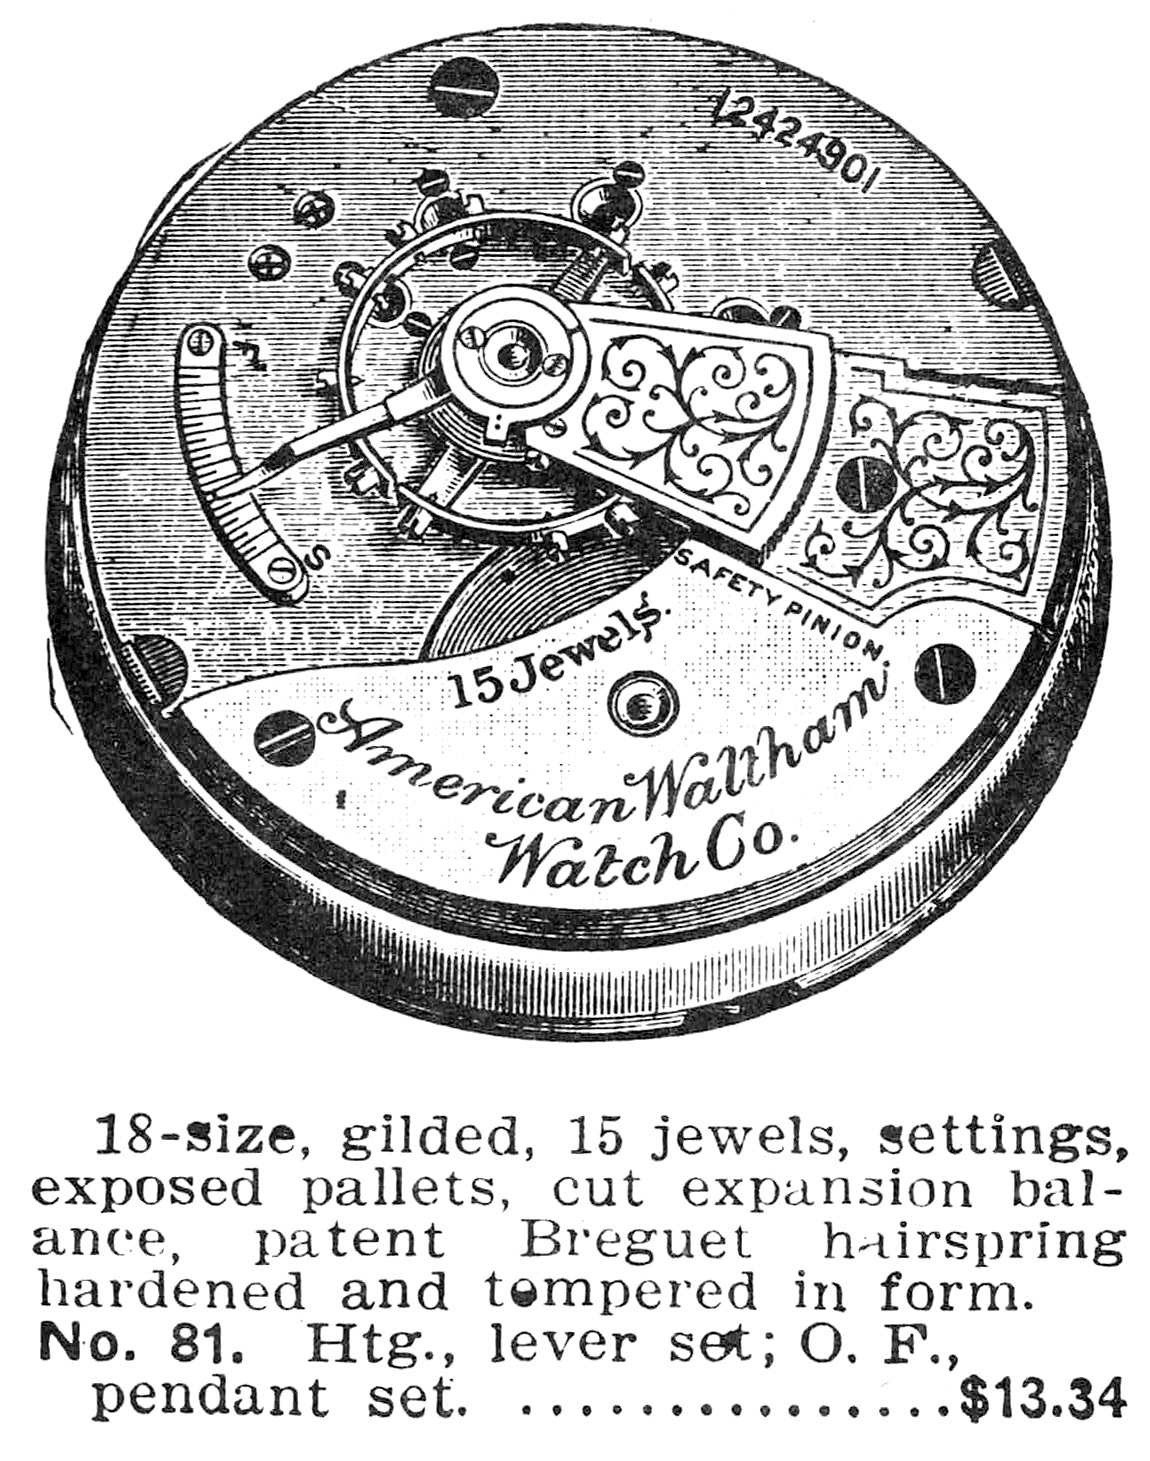 Waltham Grade No. 81 Advertisement from 1910